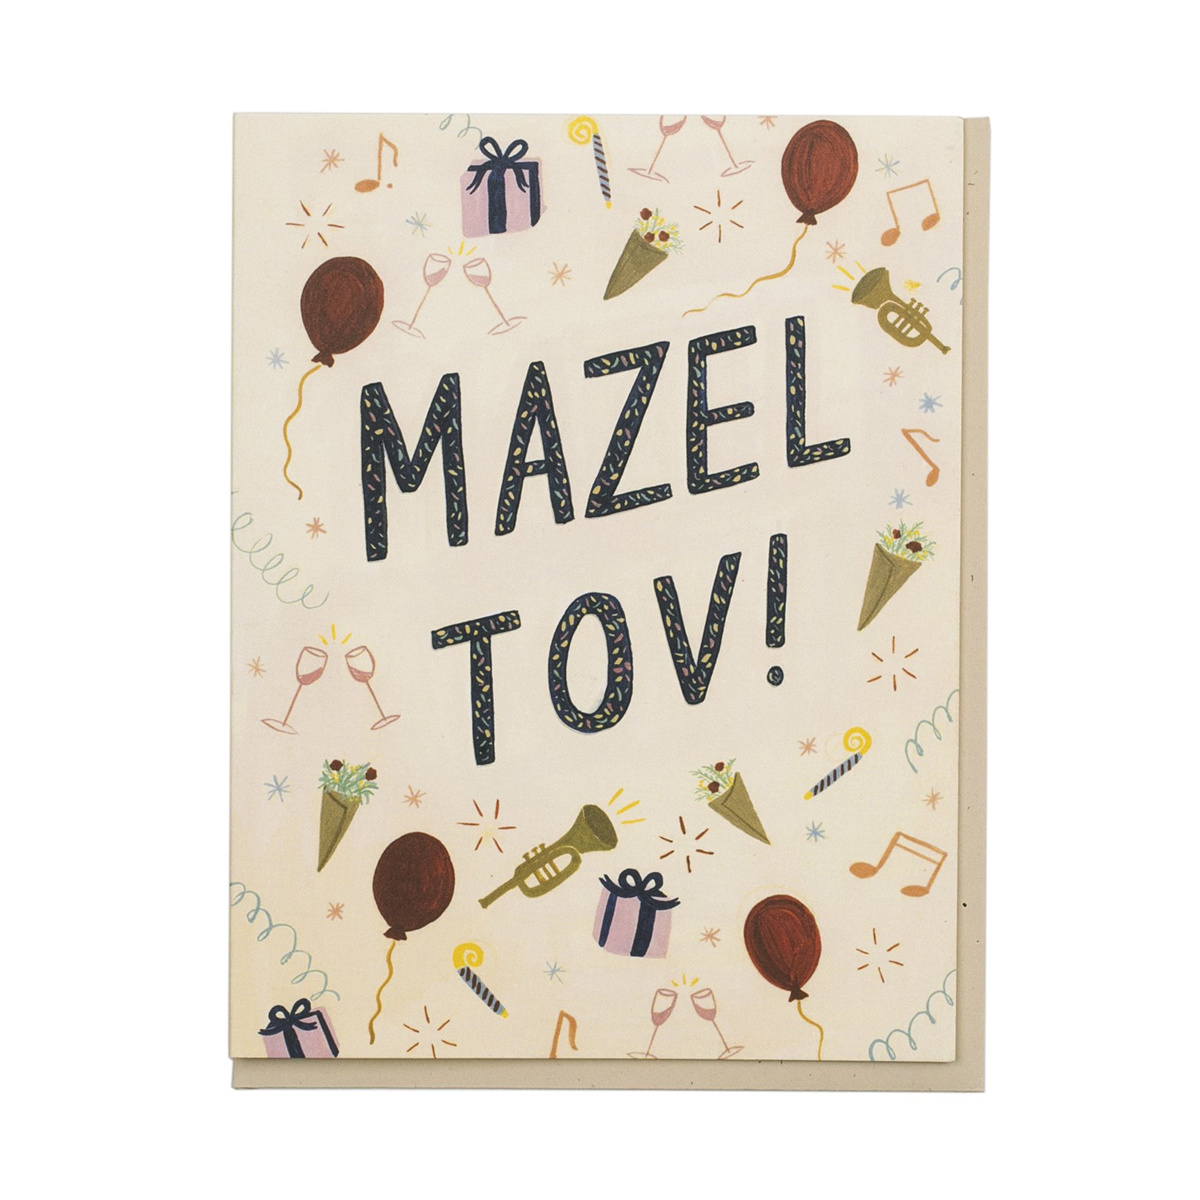 Small Adventure Mazel Tov!